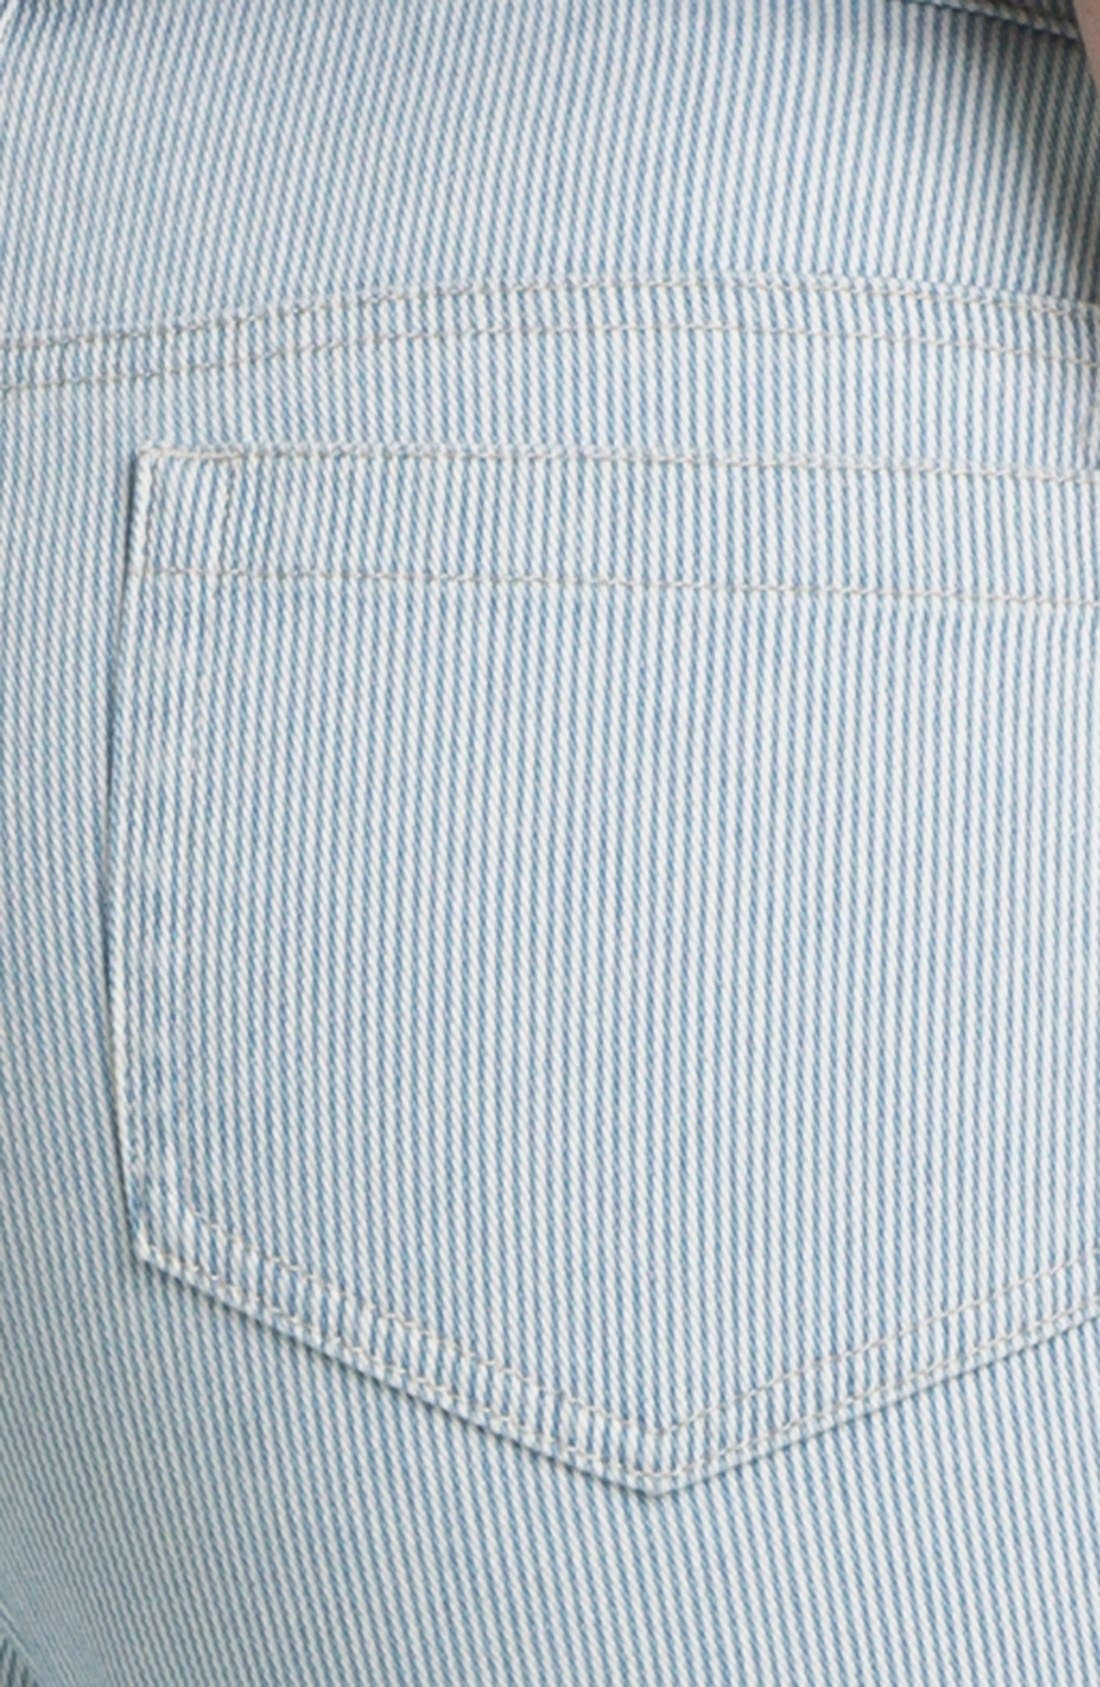 Alternate Image 3  - Two by Vince Camuto Pinstripe Zip Ankle Jeans